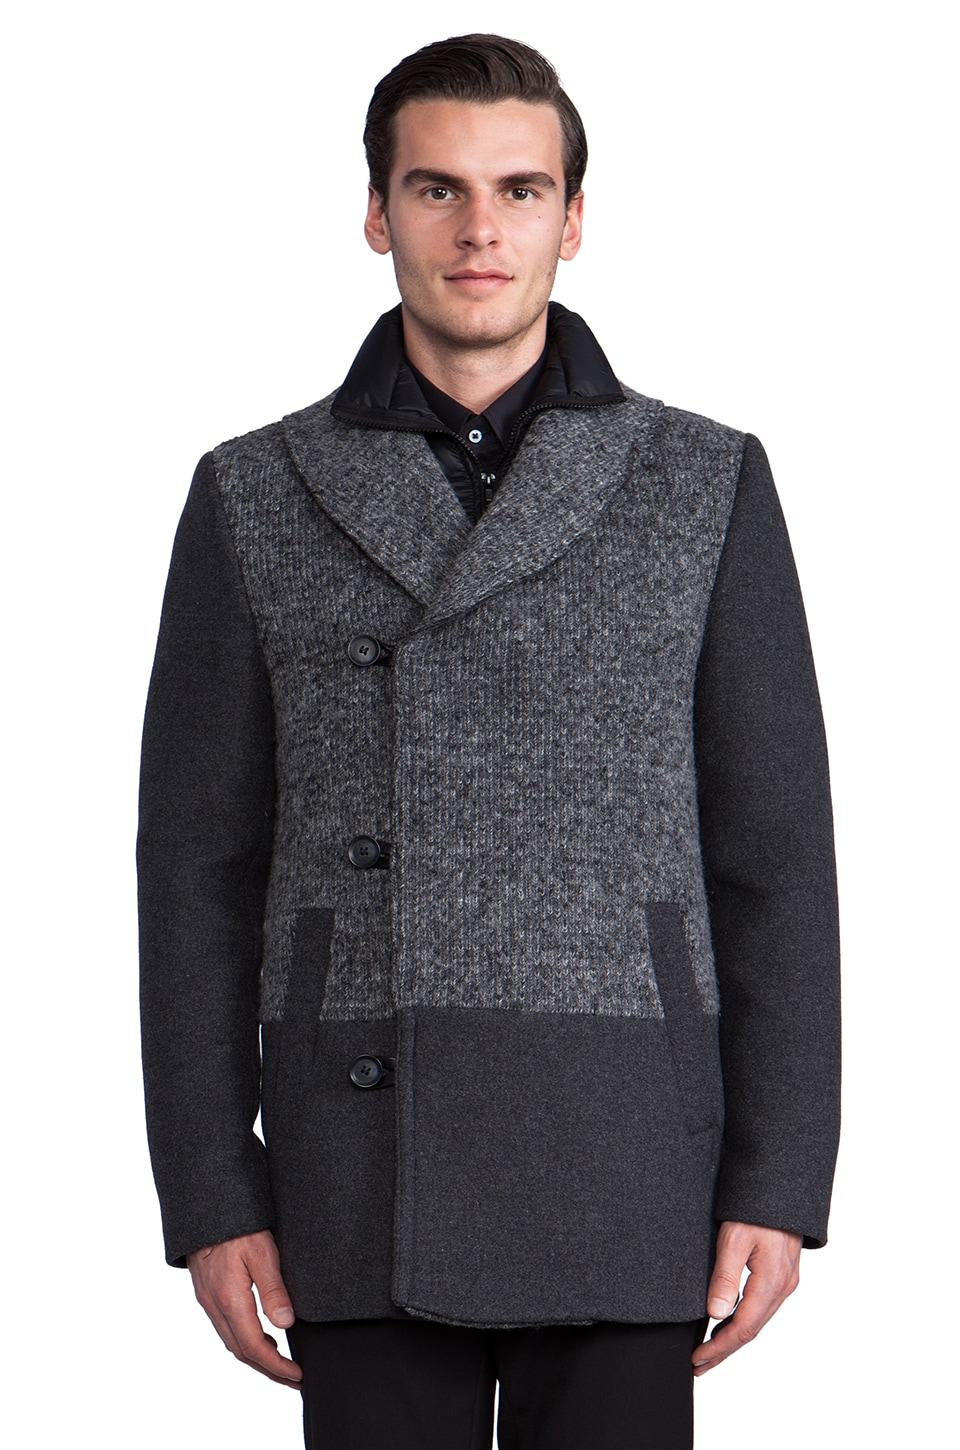 Soia & Kyo Ilan Jacket in Charcoal